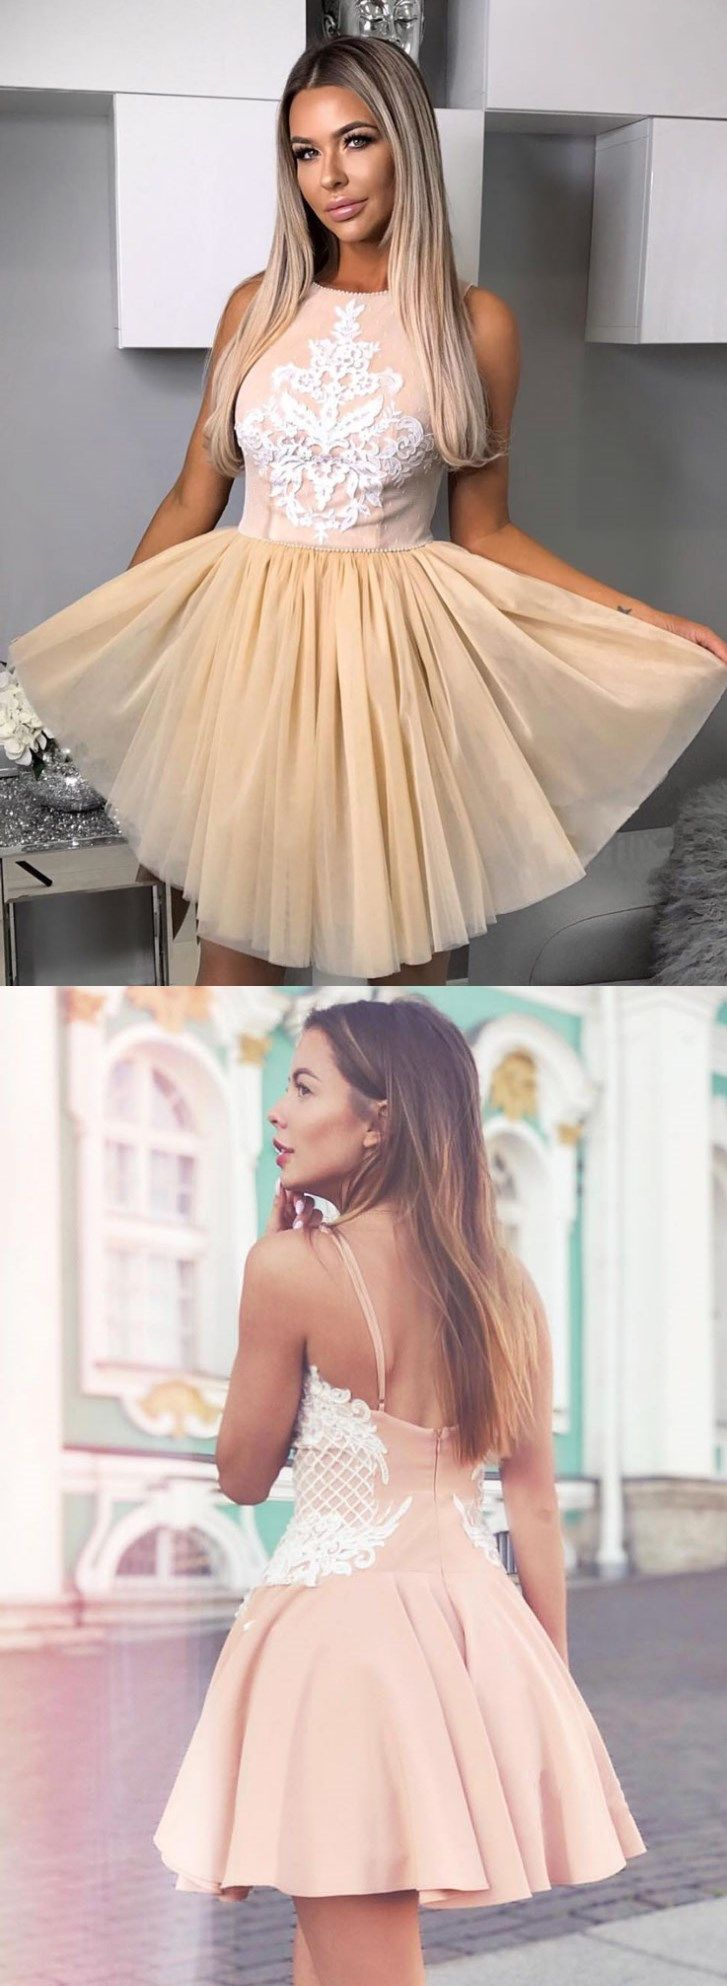 Champagne round neck lace applique short prom dress homecoming